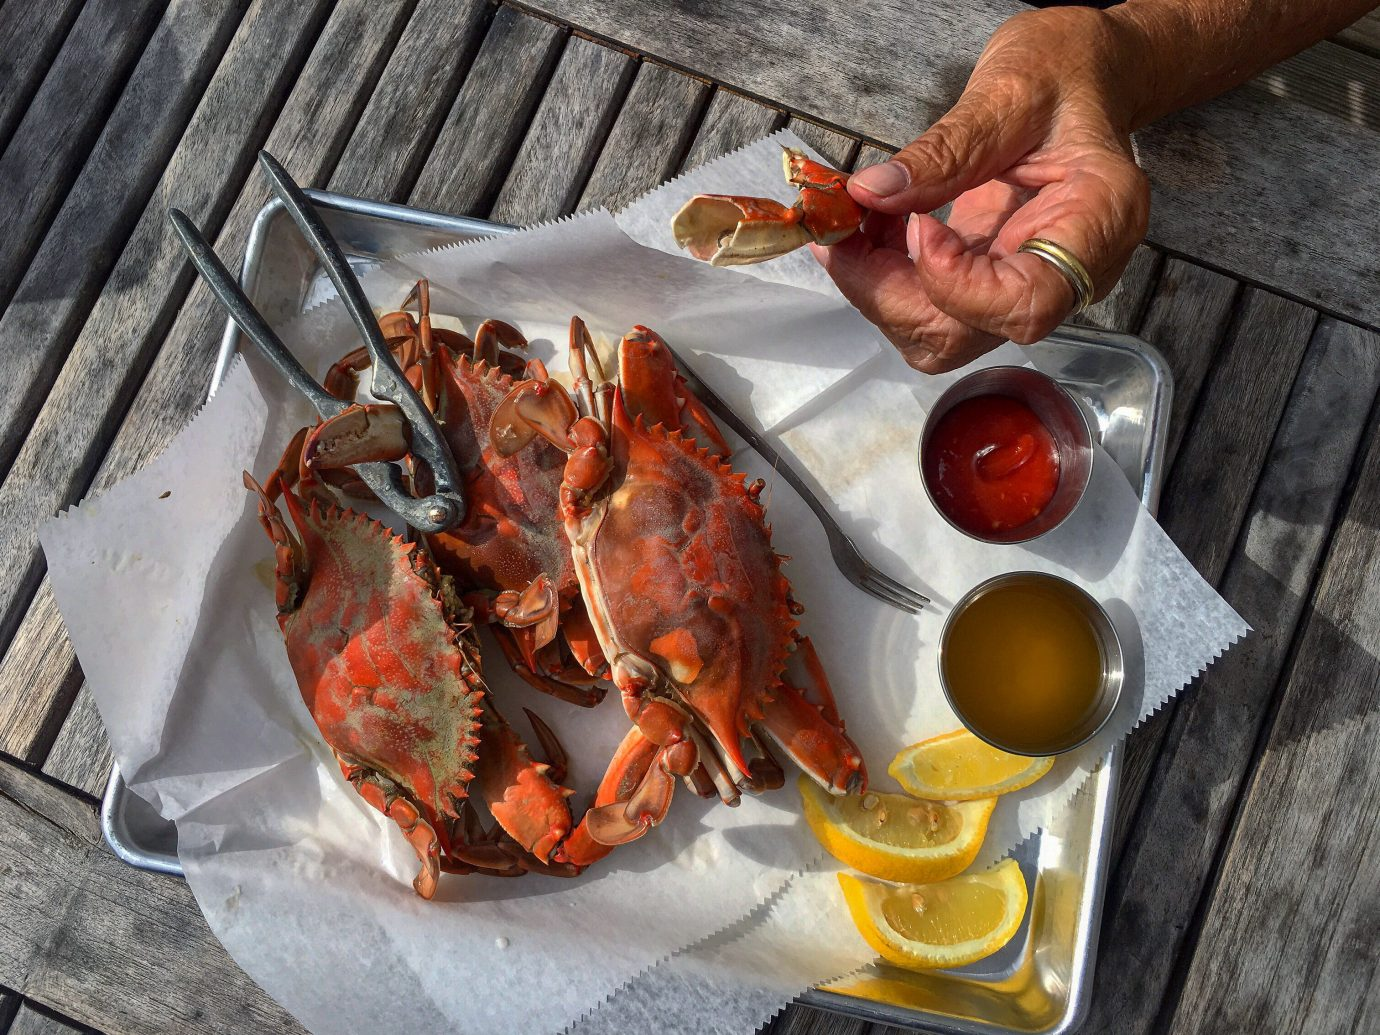 Girls Getaways Trip Ideas Weekend Getaways arthropod invertebrate animal person Seafood crab food outdoor dungeness crab decapoda animal source foods crustacean seafood boil lobster crab boil dish king crab crab meat recipe lobster thermidor soft shell crab meat meal